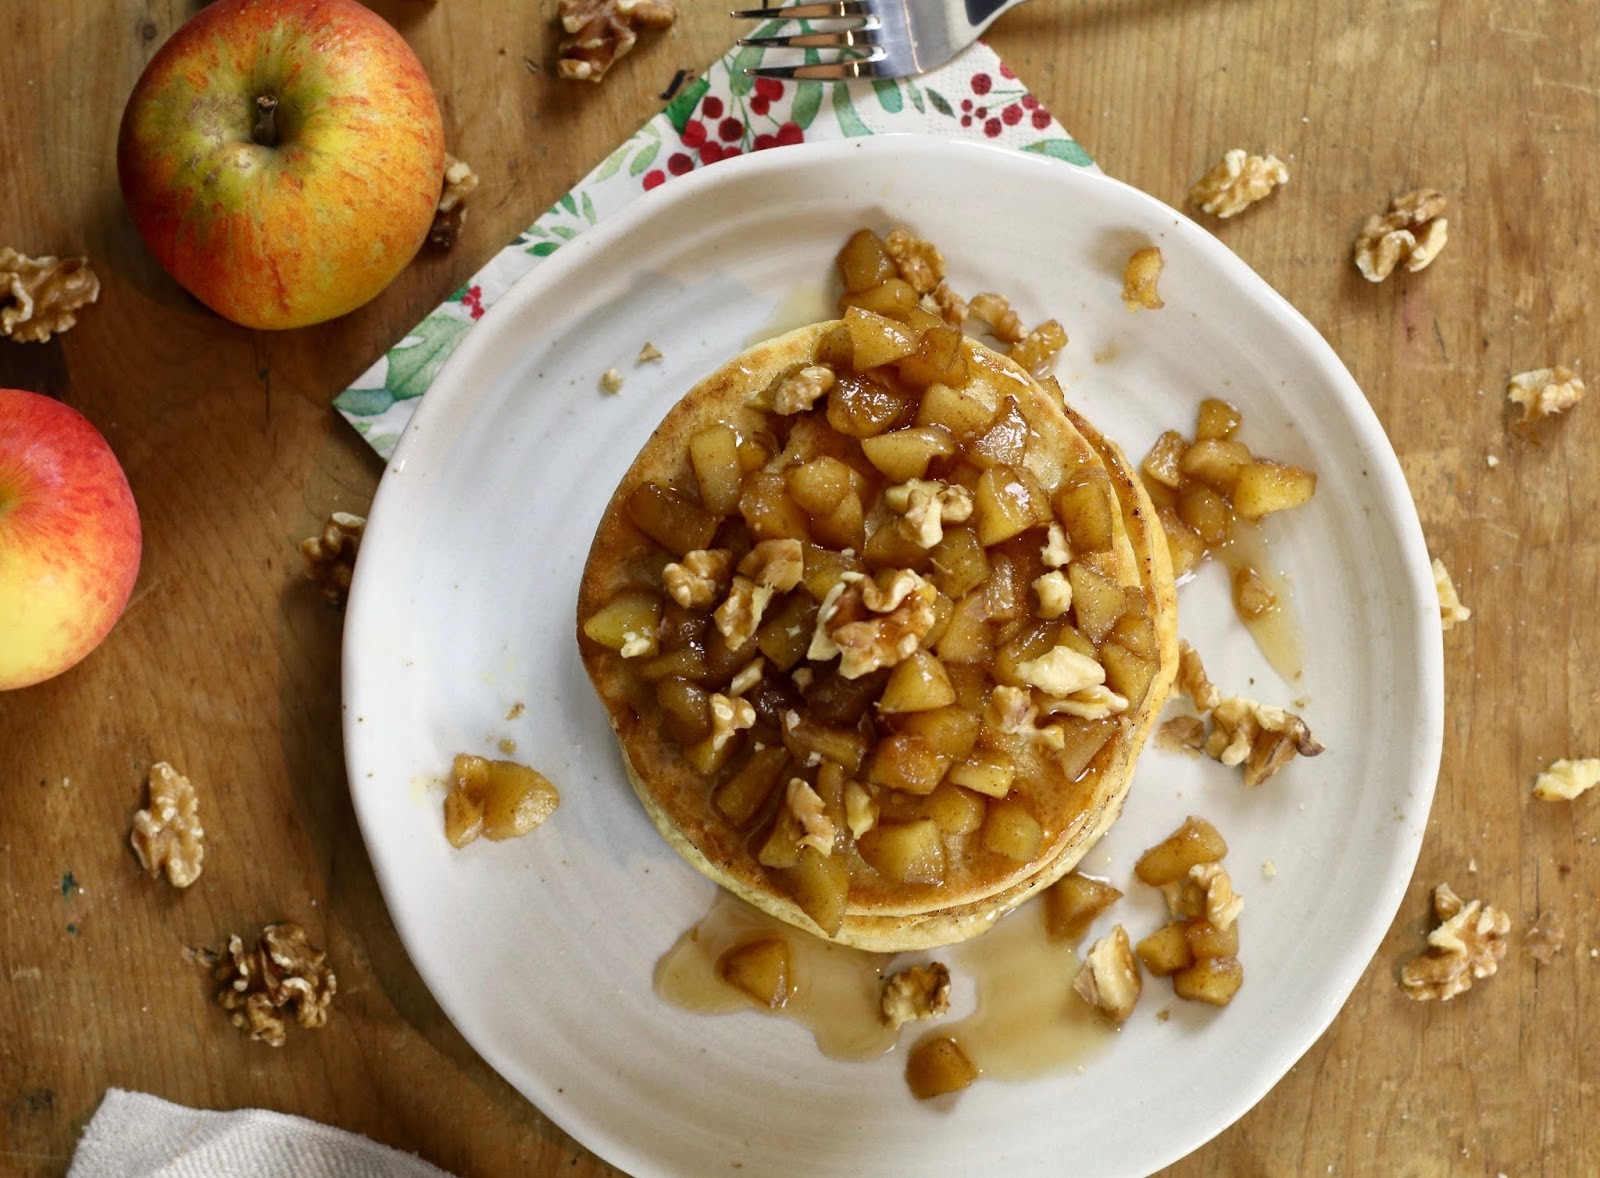 Festive-breakfas-ideas-apple-pancakes